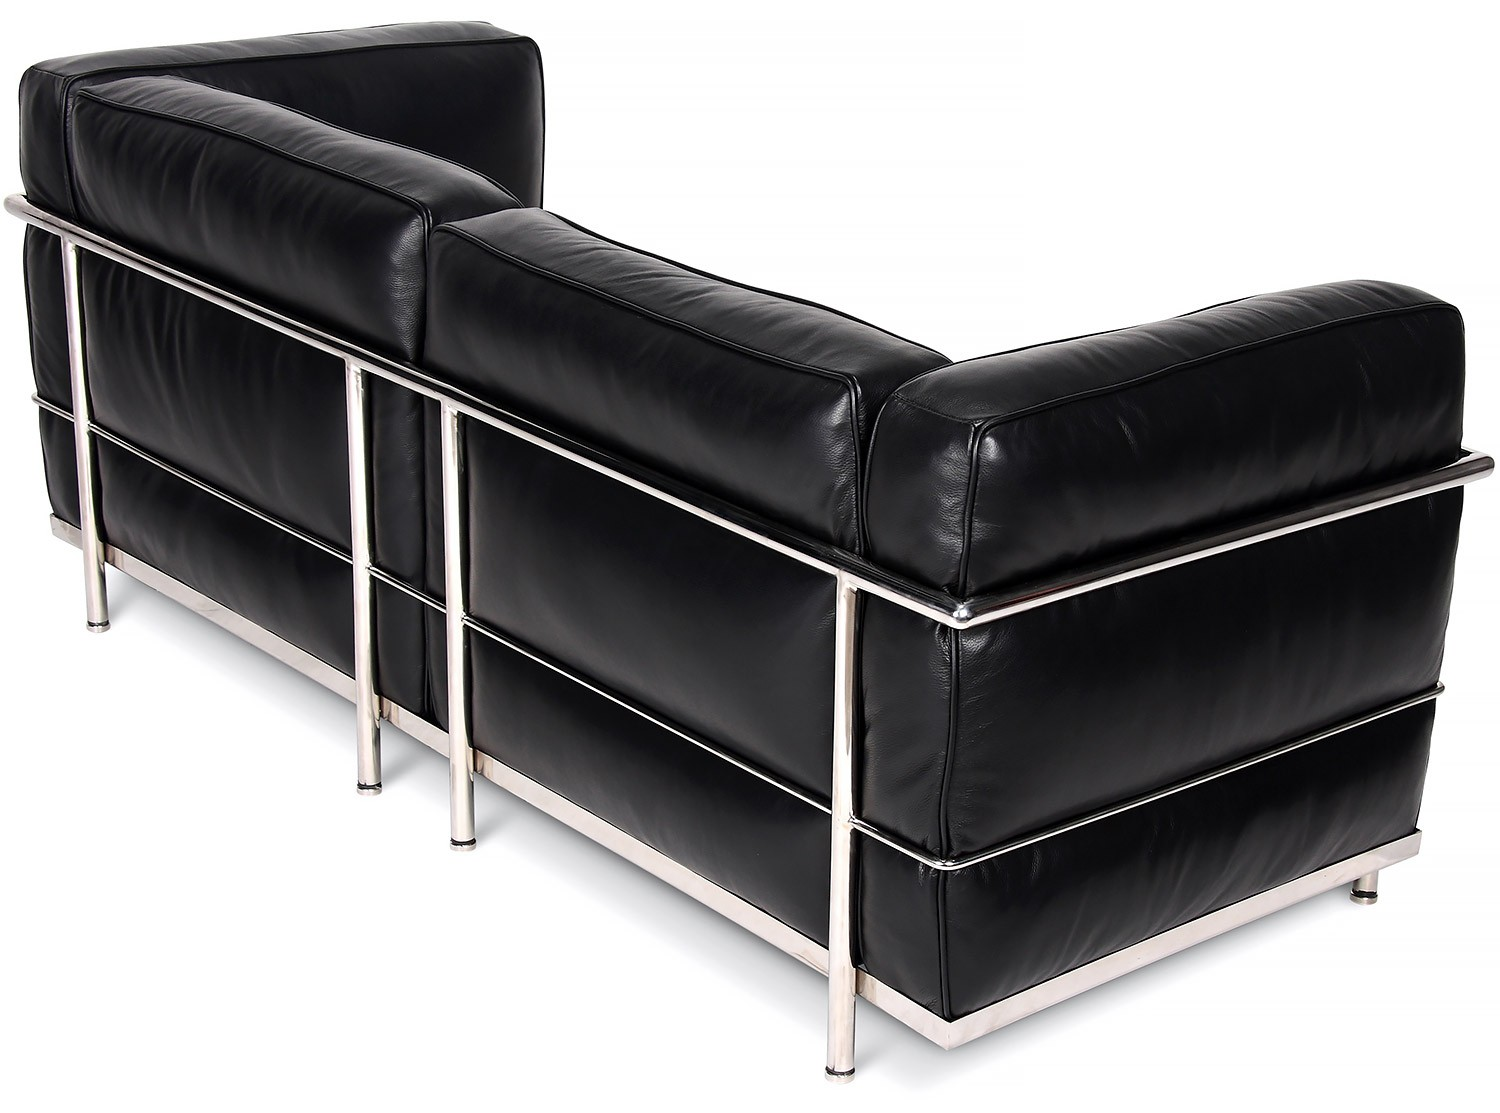 le corbusier sofa replica living room ideas with dark gray lc3 2 seater grand confort collector